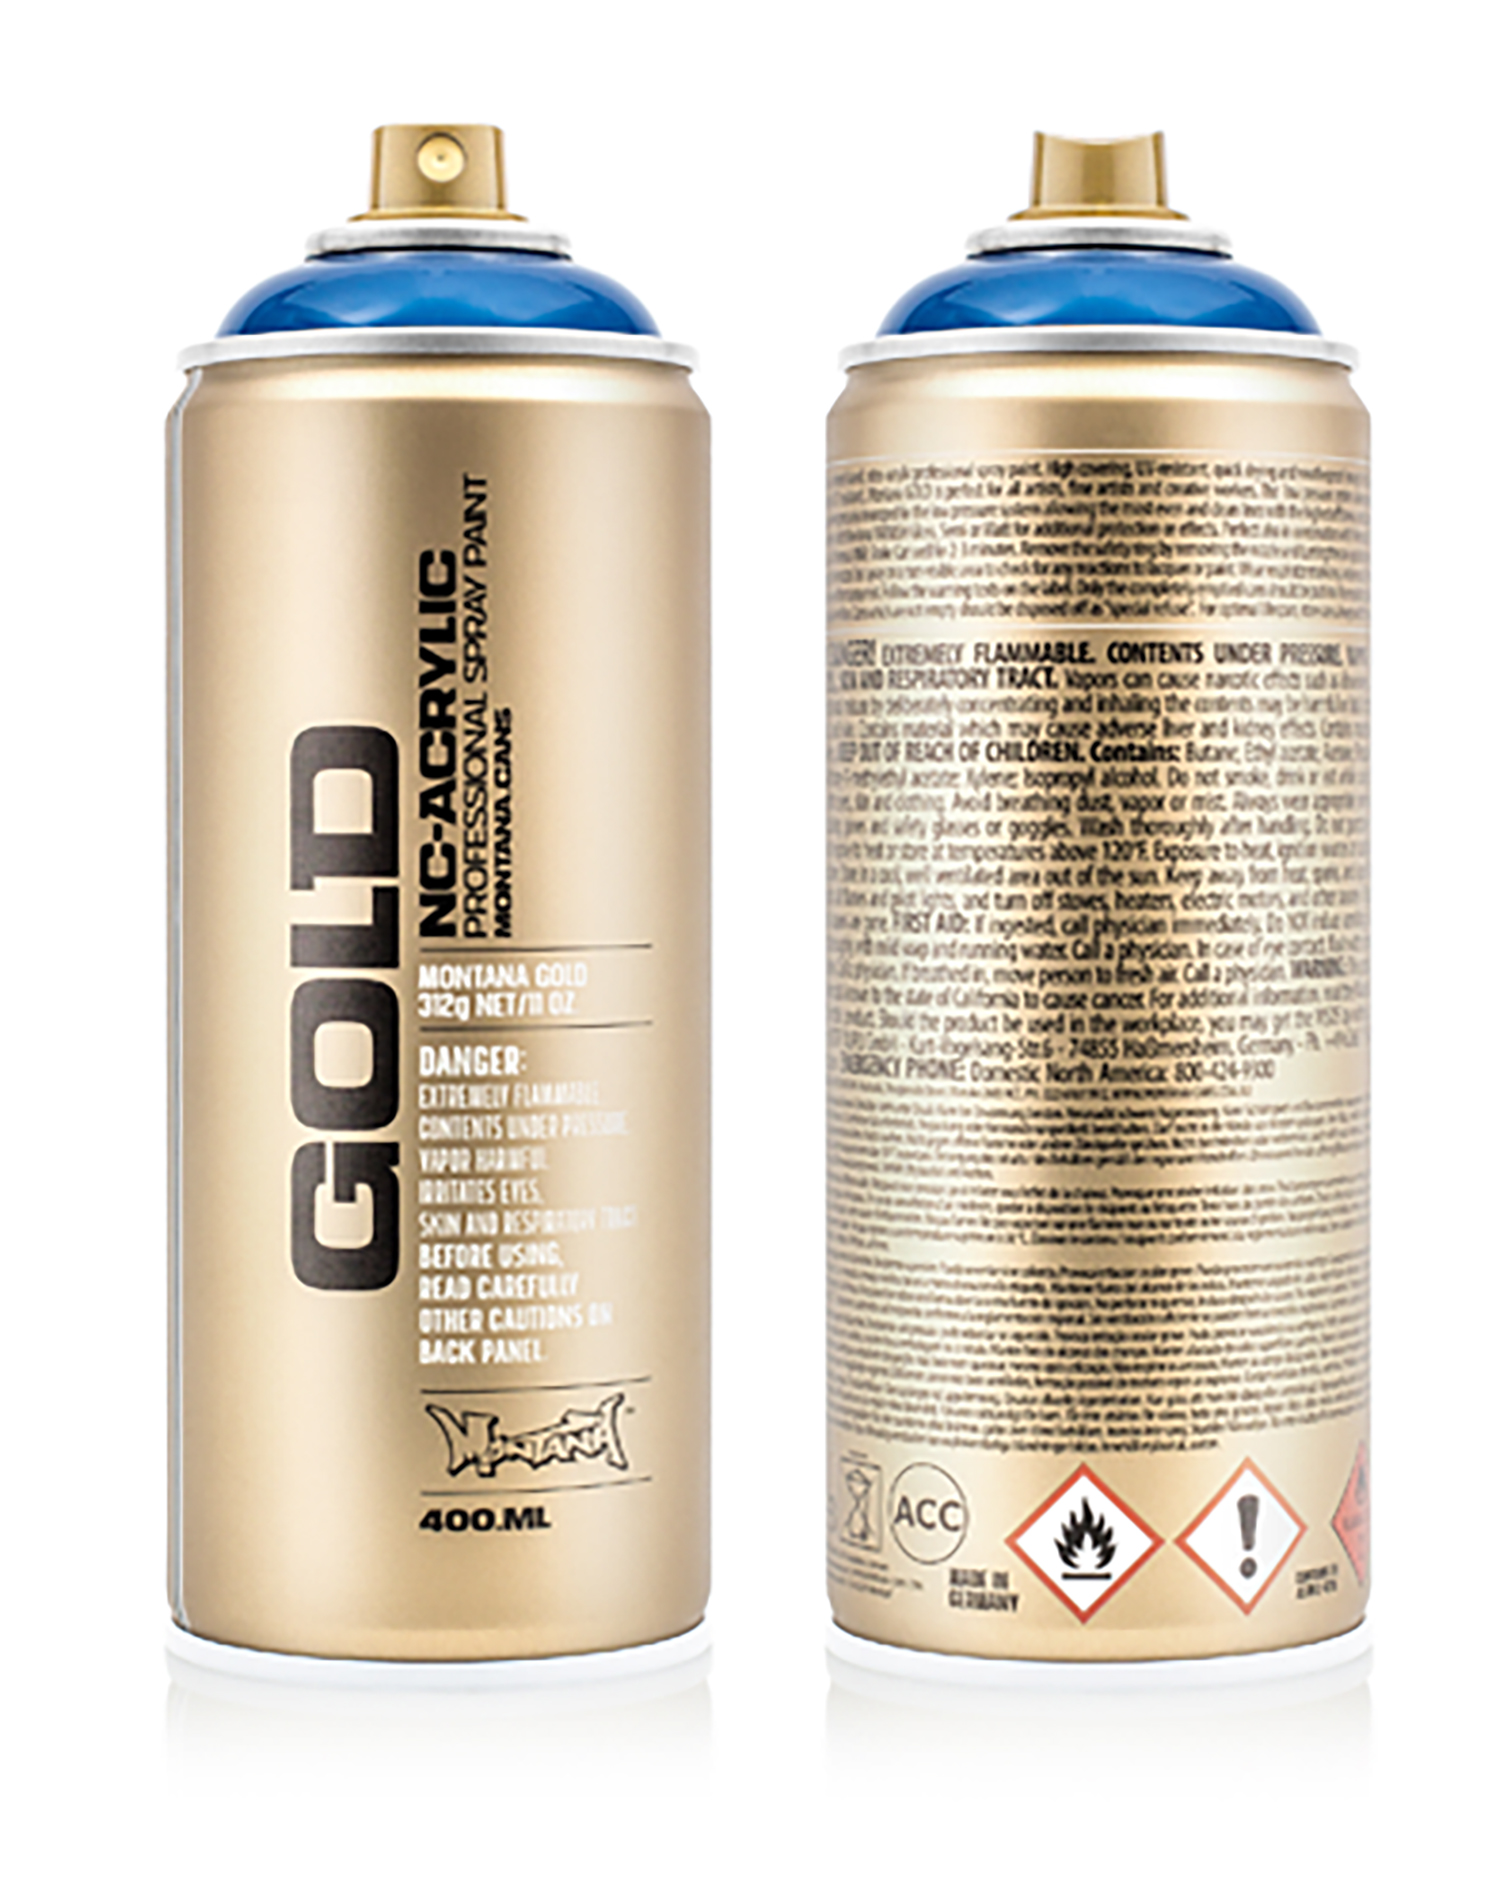 MONTANA-GOLD-SPRAY-400ML-T5080